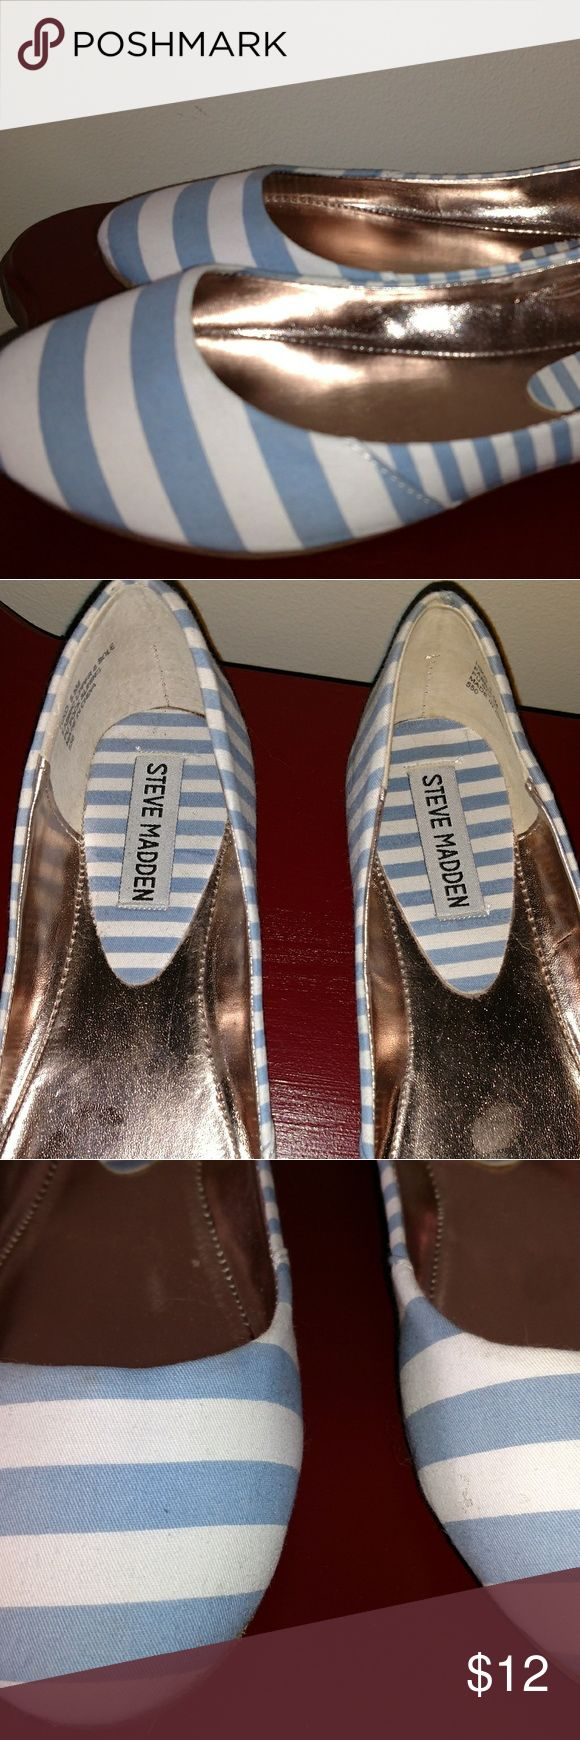 Steve Madden flats blue and white stripe Cute ballet flats with minimal signs of use.  Up close you can see a couple of tiny things but looking down as you wear them they look brand new.  I prefer to describe on the side of caution.  Pet friendly. Steve Madden Shoes Flats & Loafers